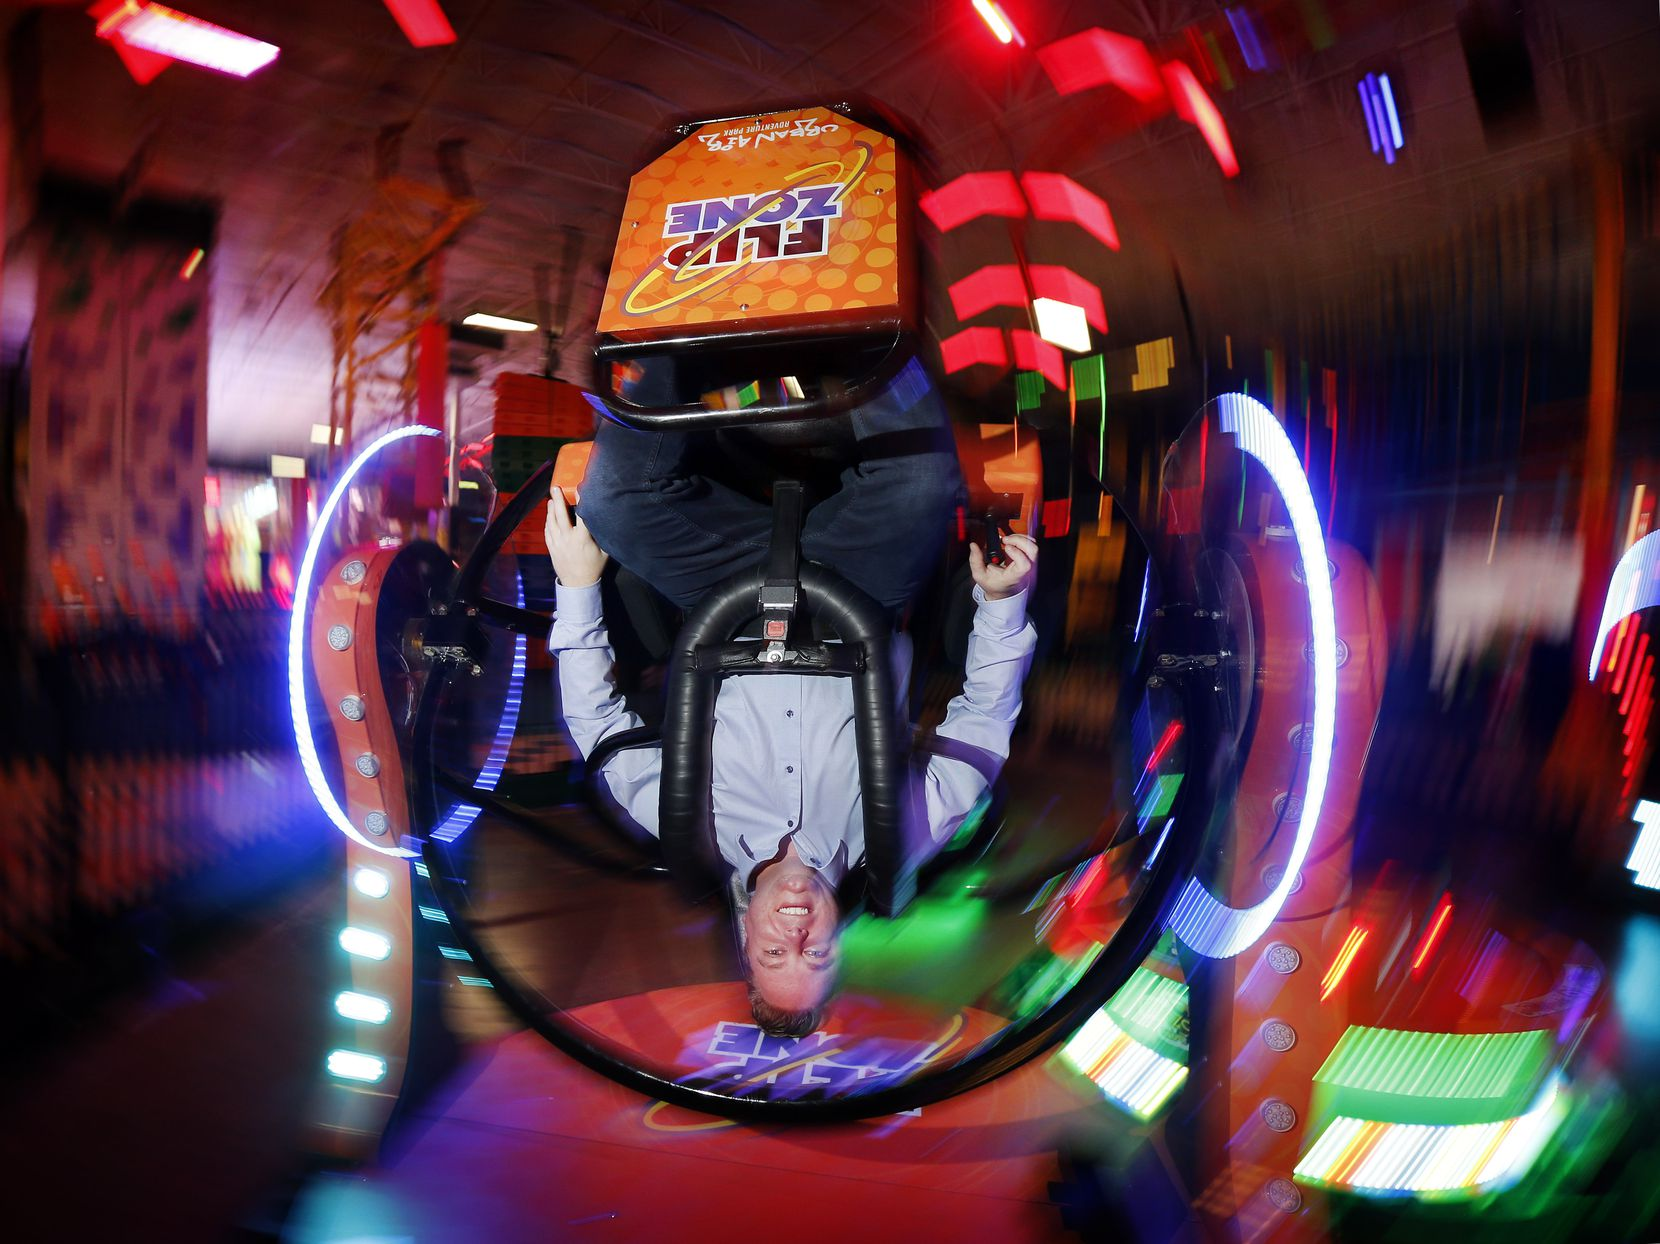 Urban Air Adventure Park CEO Michael Browning took a ride in the Spin and Flip Zone of their flagship location in Southlake in January 2019.